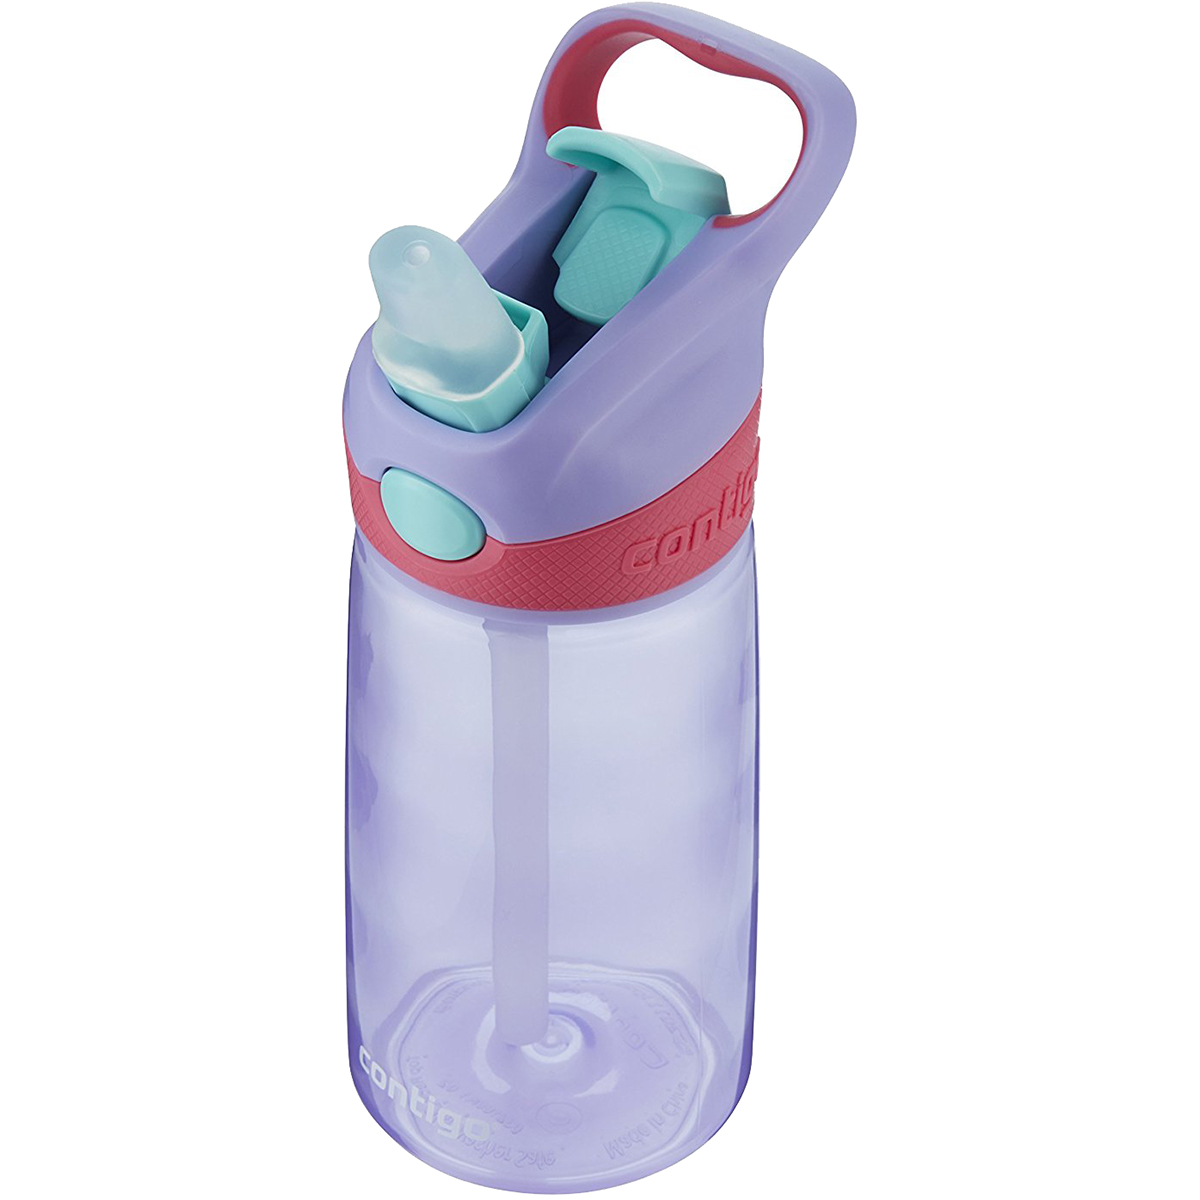 Contigo-14-oz-Kid-039-s-Striker-Autospout-Water-Bottle Indexbild 56